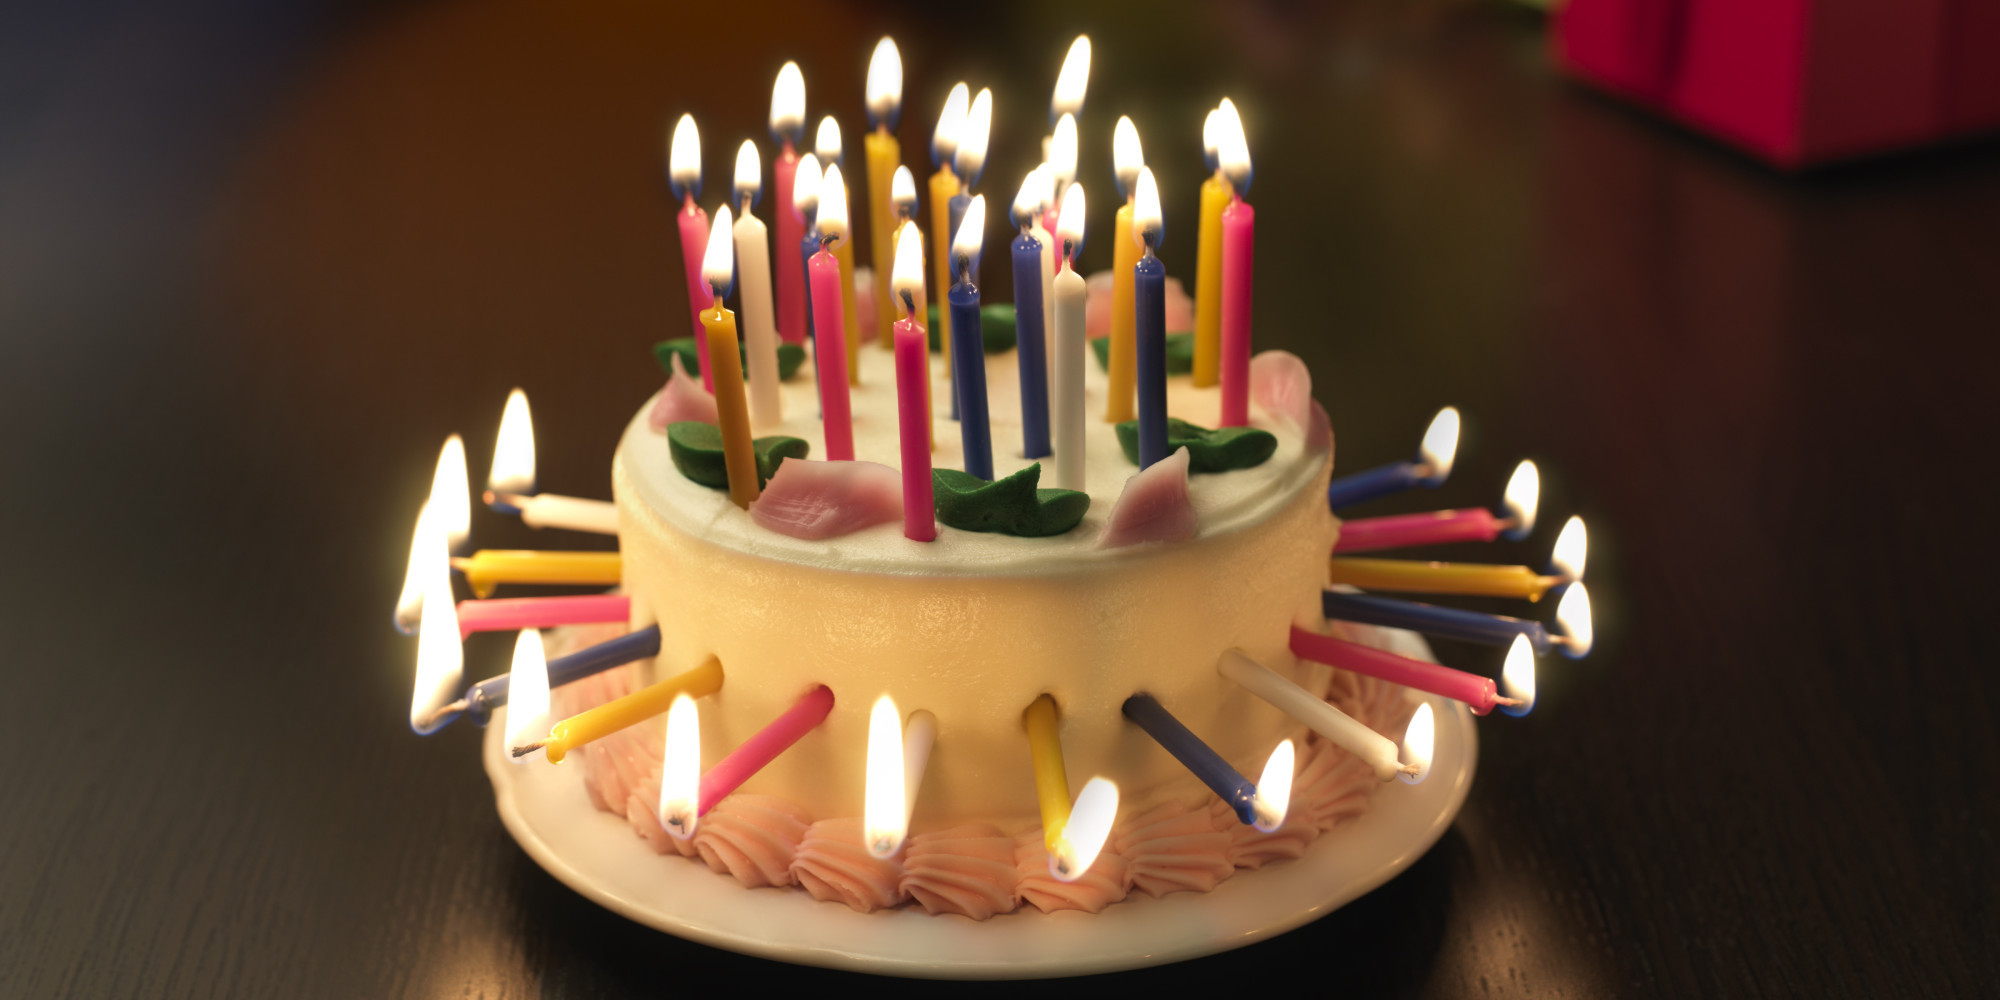 Images Of Cake With Lots Of Candles : o-BIRTHDAY-CAKE-WITH-LOTS-OF-CANDLES-facebook.jpg